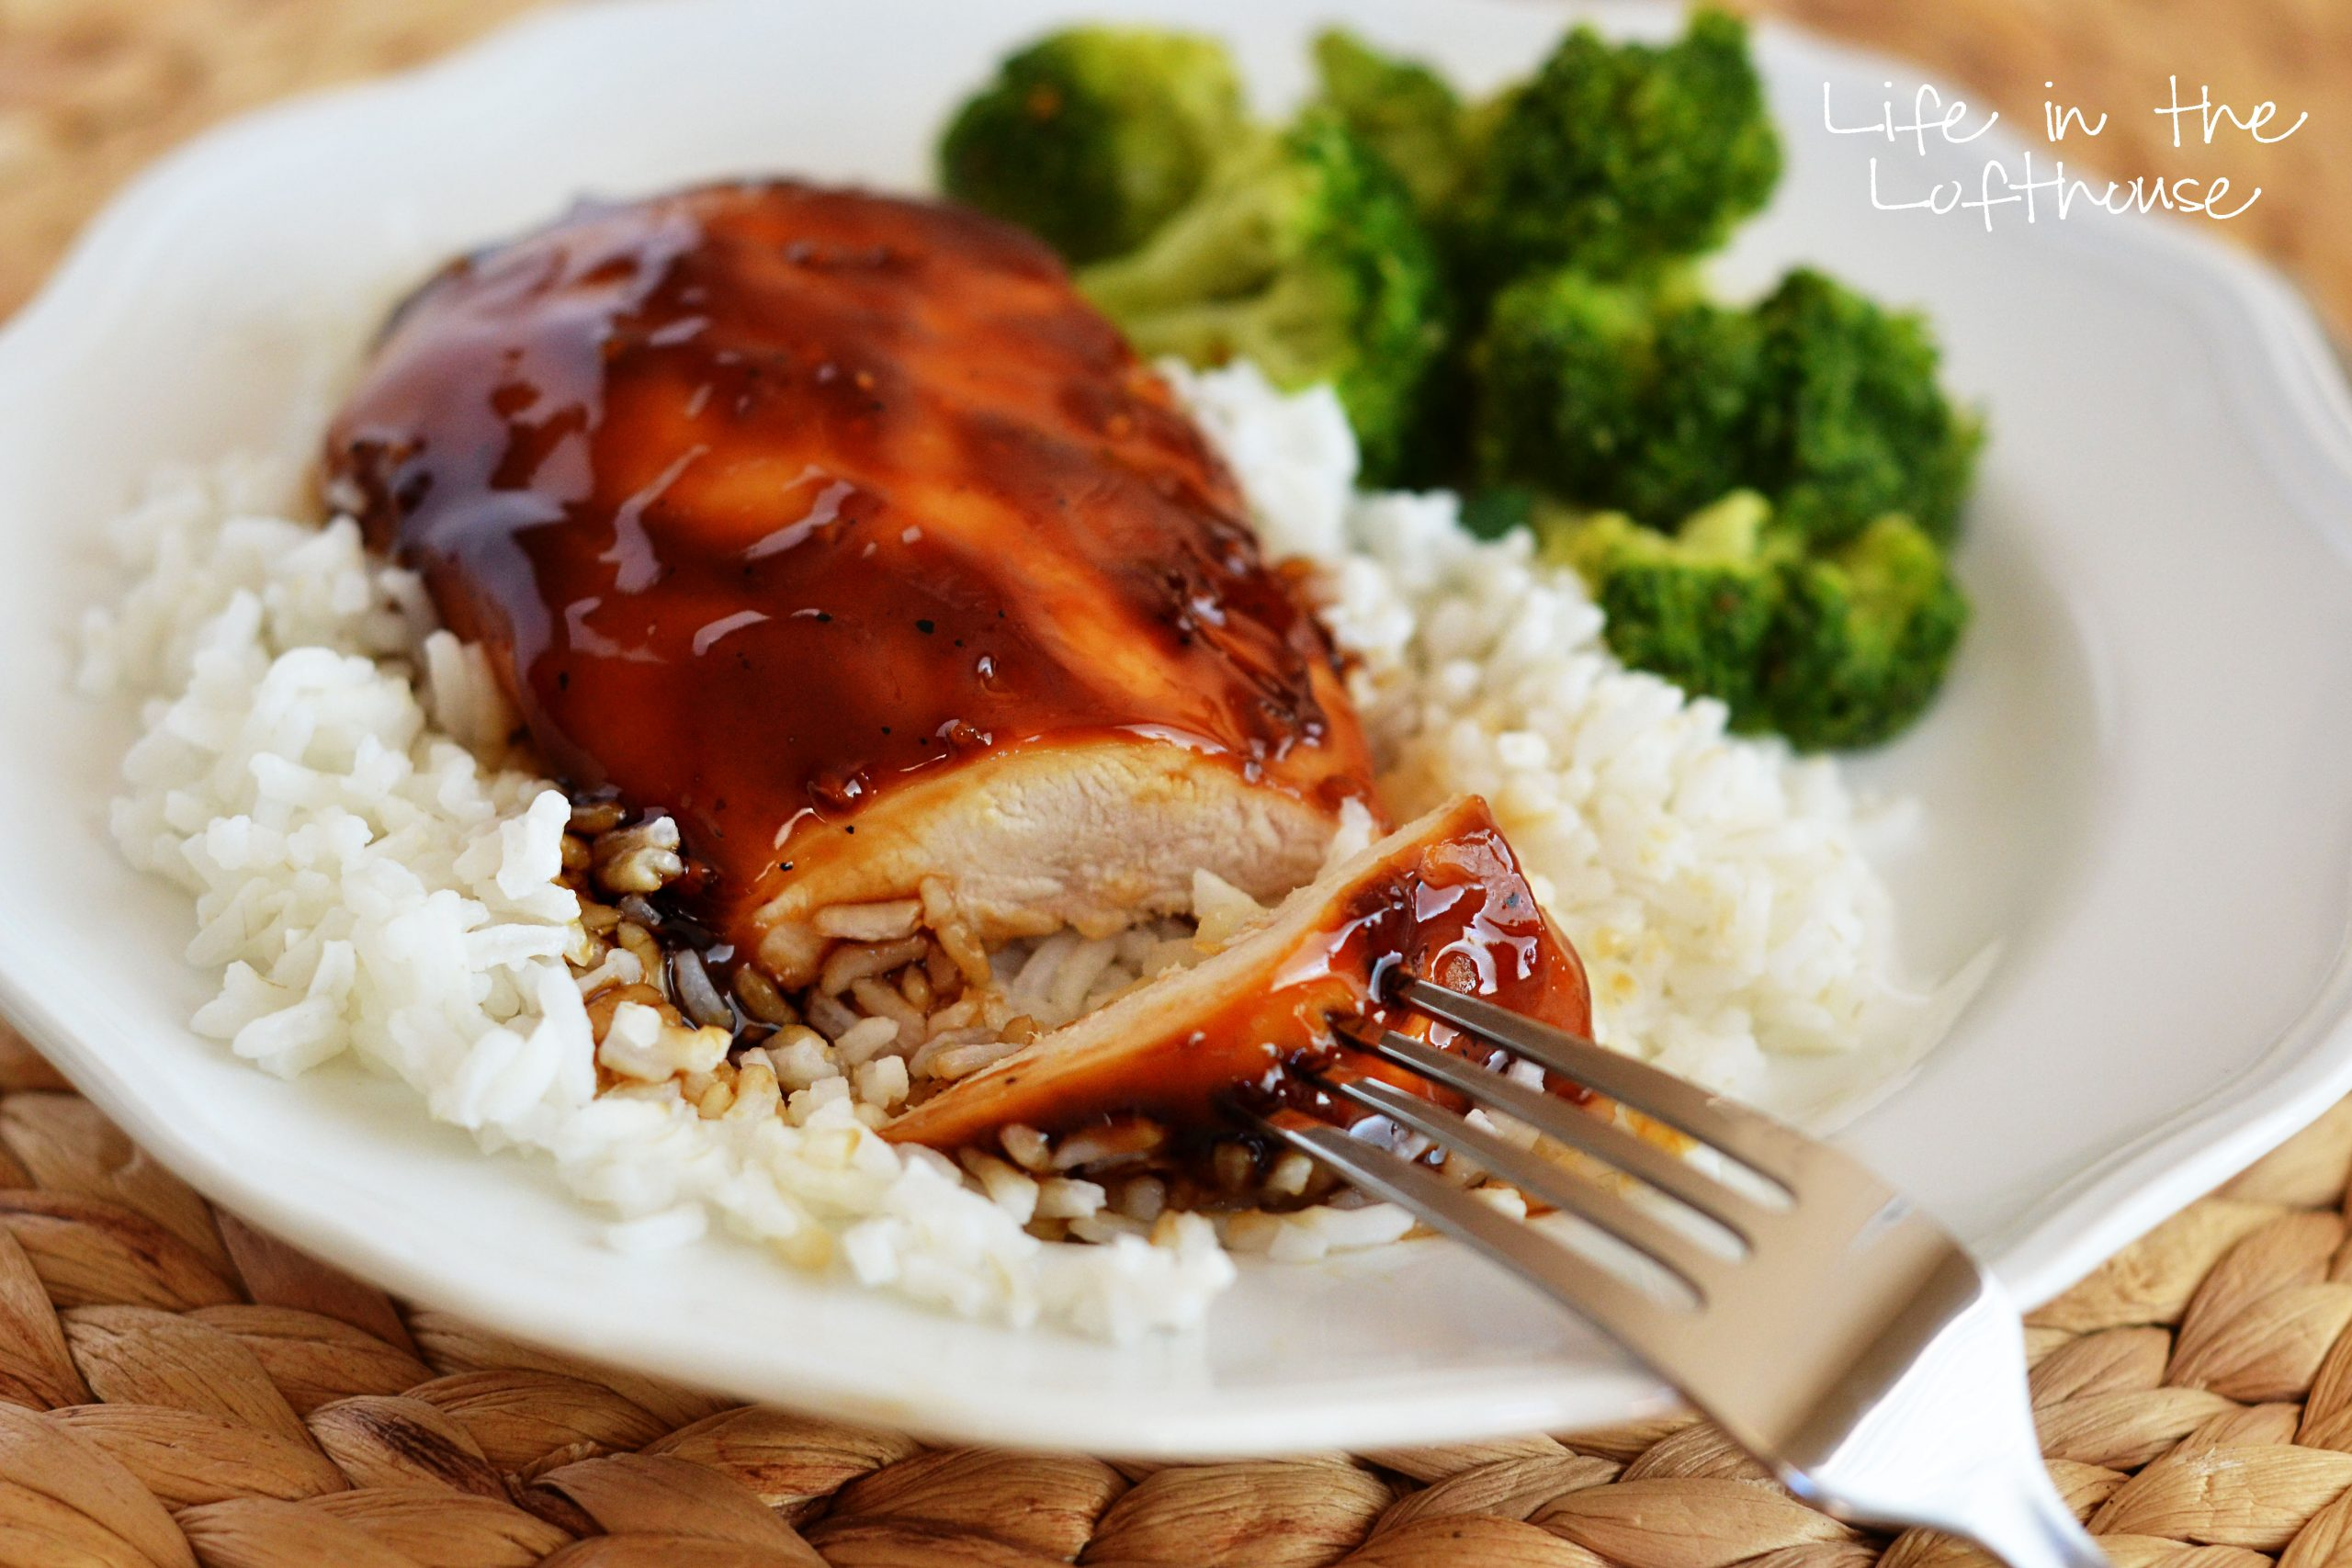 Teriyaki Chicken Recipe (with images, tweet) · katycavallero00 ...